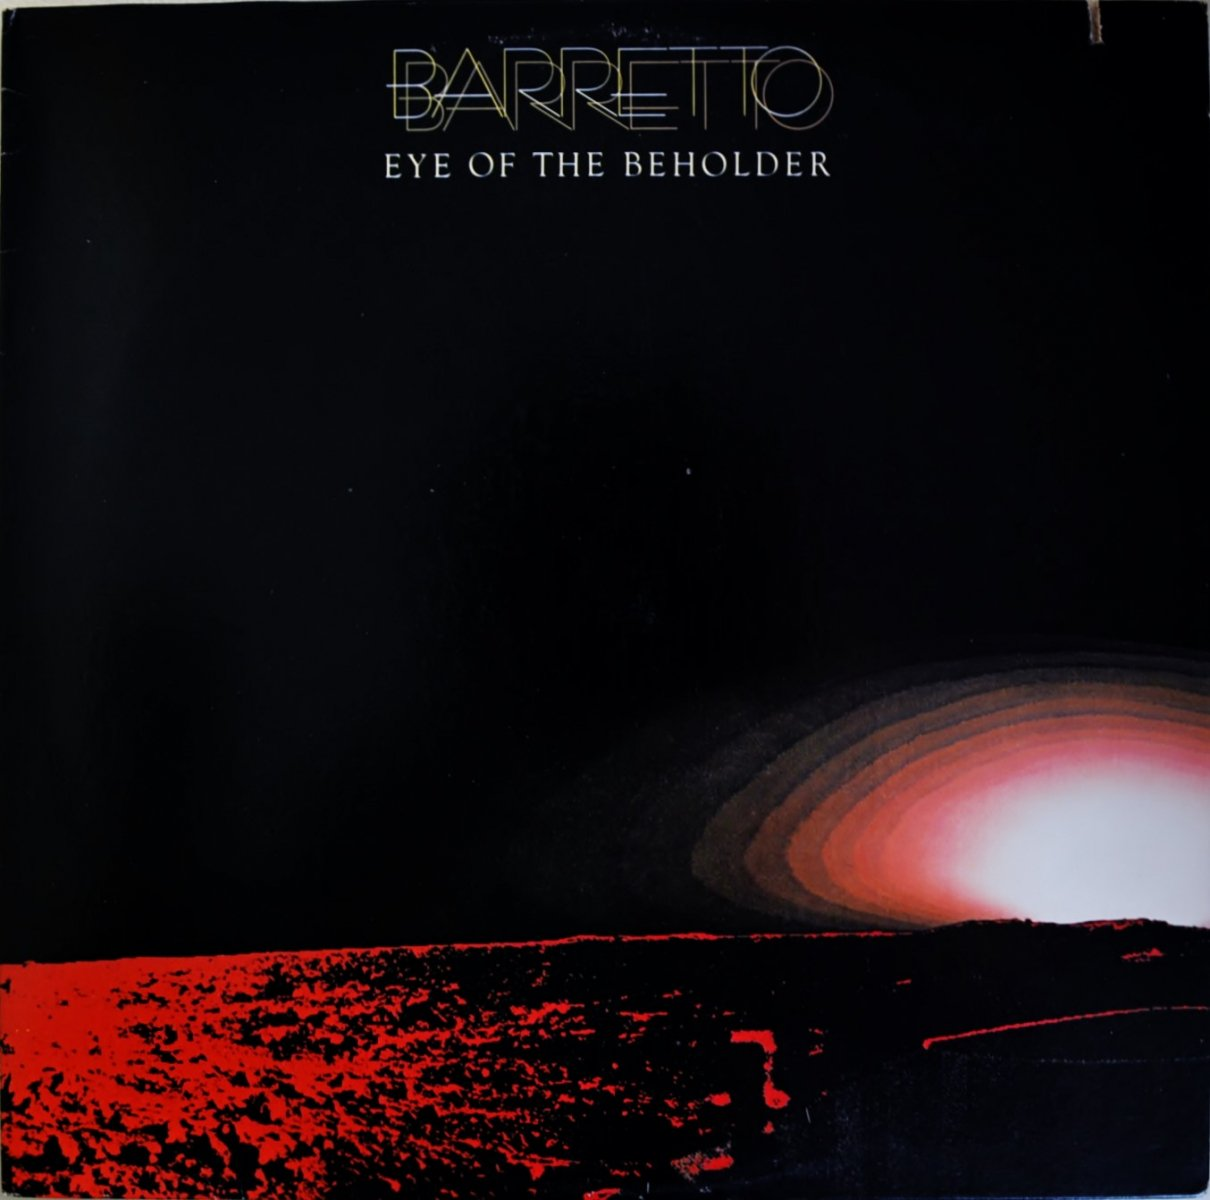 BARRETTO (RAY BARRETTO) / EYE OF THE BEHOLDER (LP)